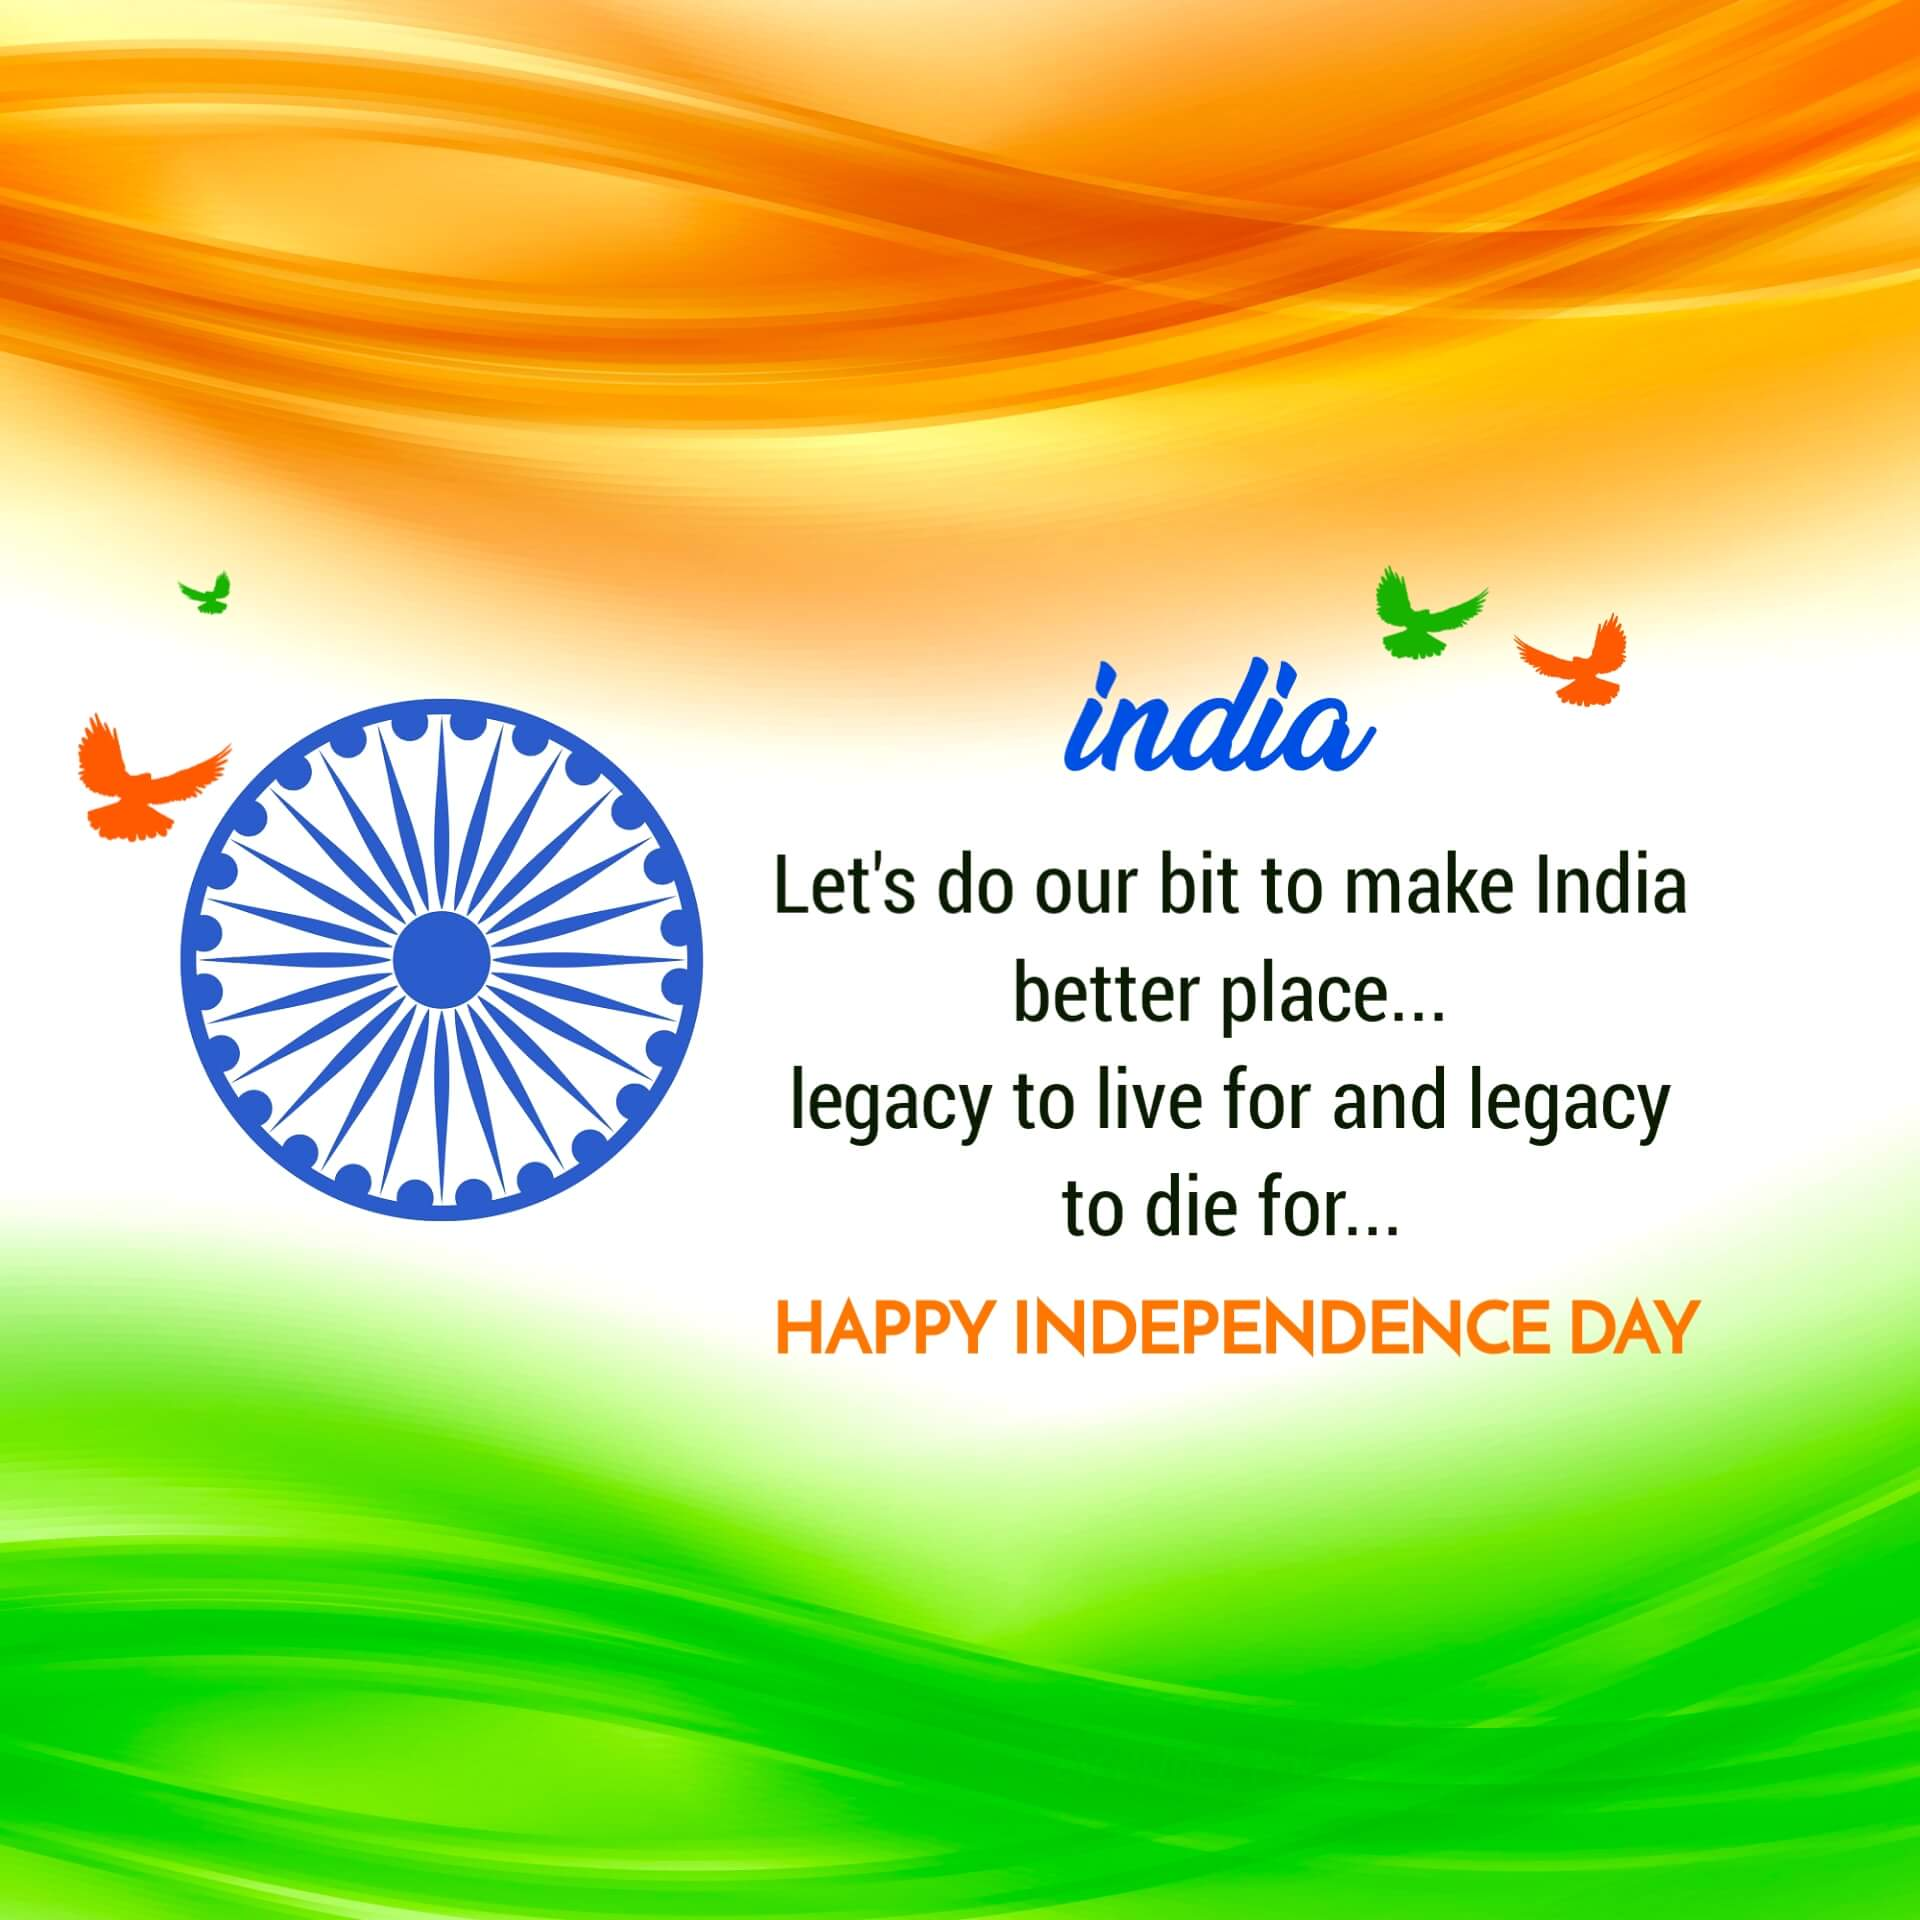 India Independence Day Image with Message